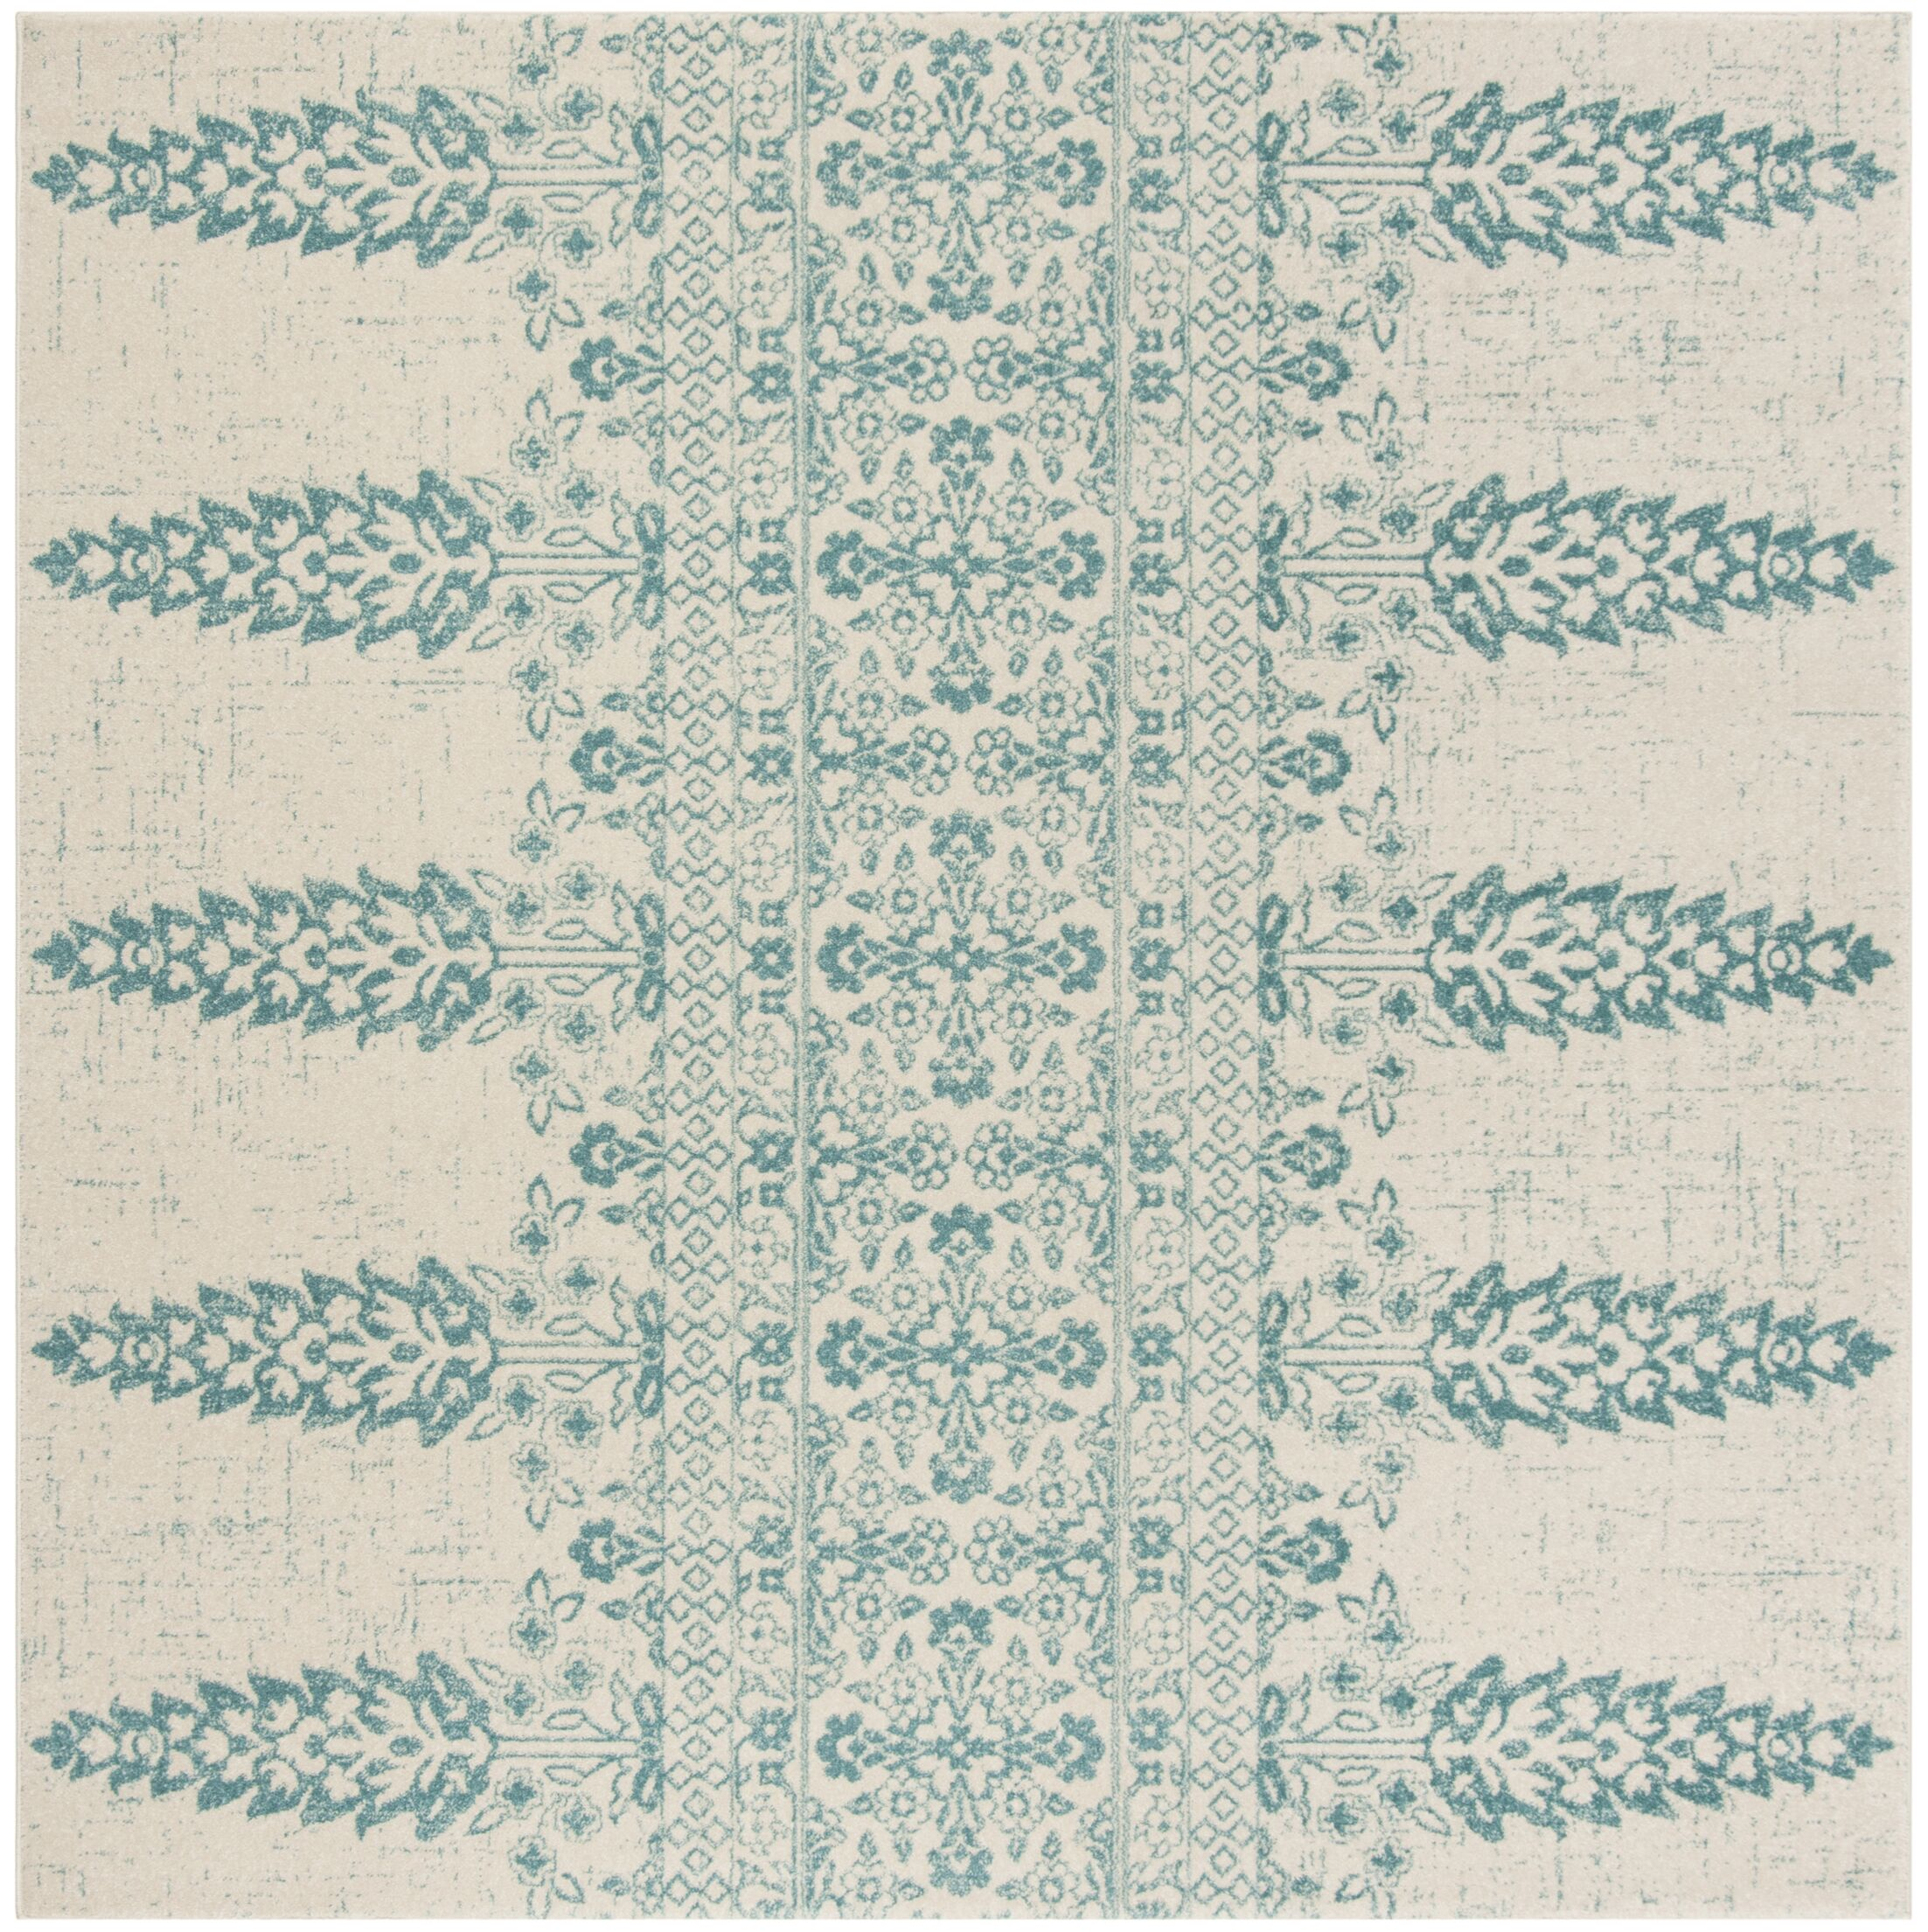 Elson Ivory/Teal Area Rug Rug Size: Square 6'7